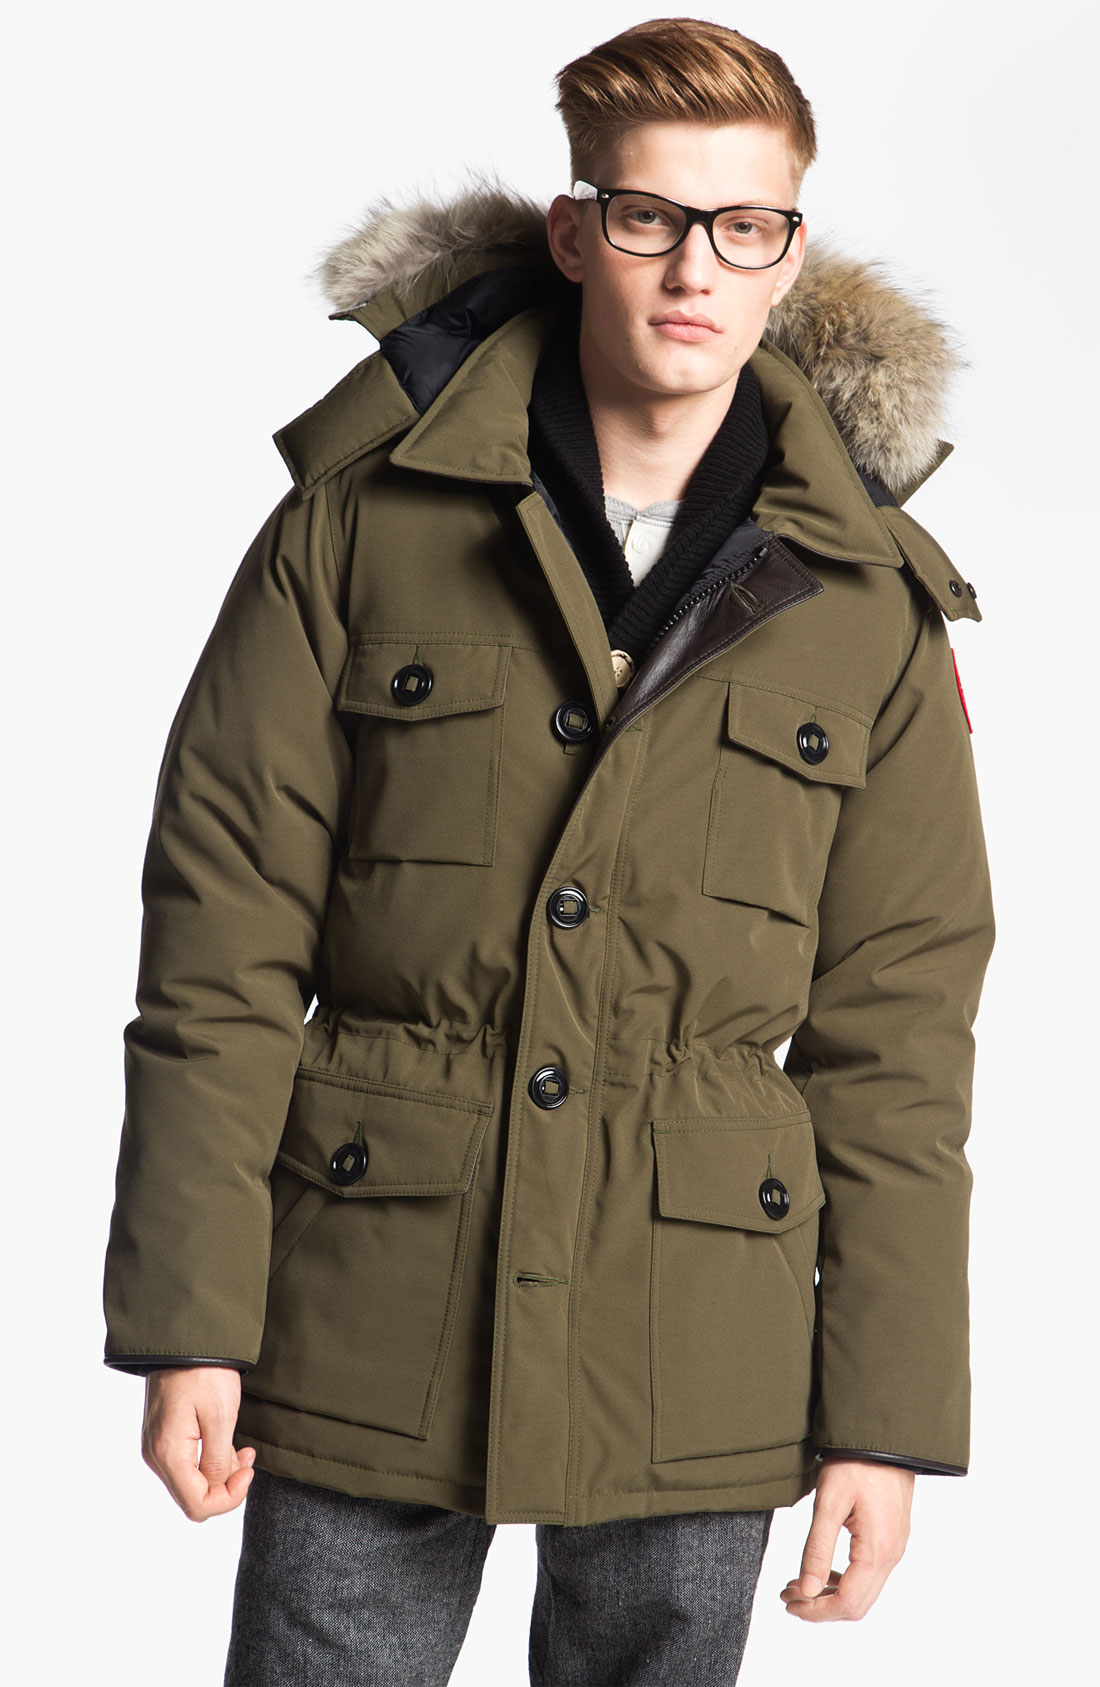 Shop Cabela's Bargaom Cave and find men's parkas and other insulated outerwear at amazing discounts.